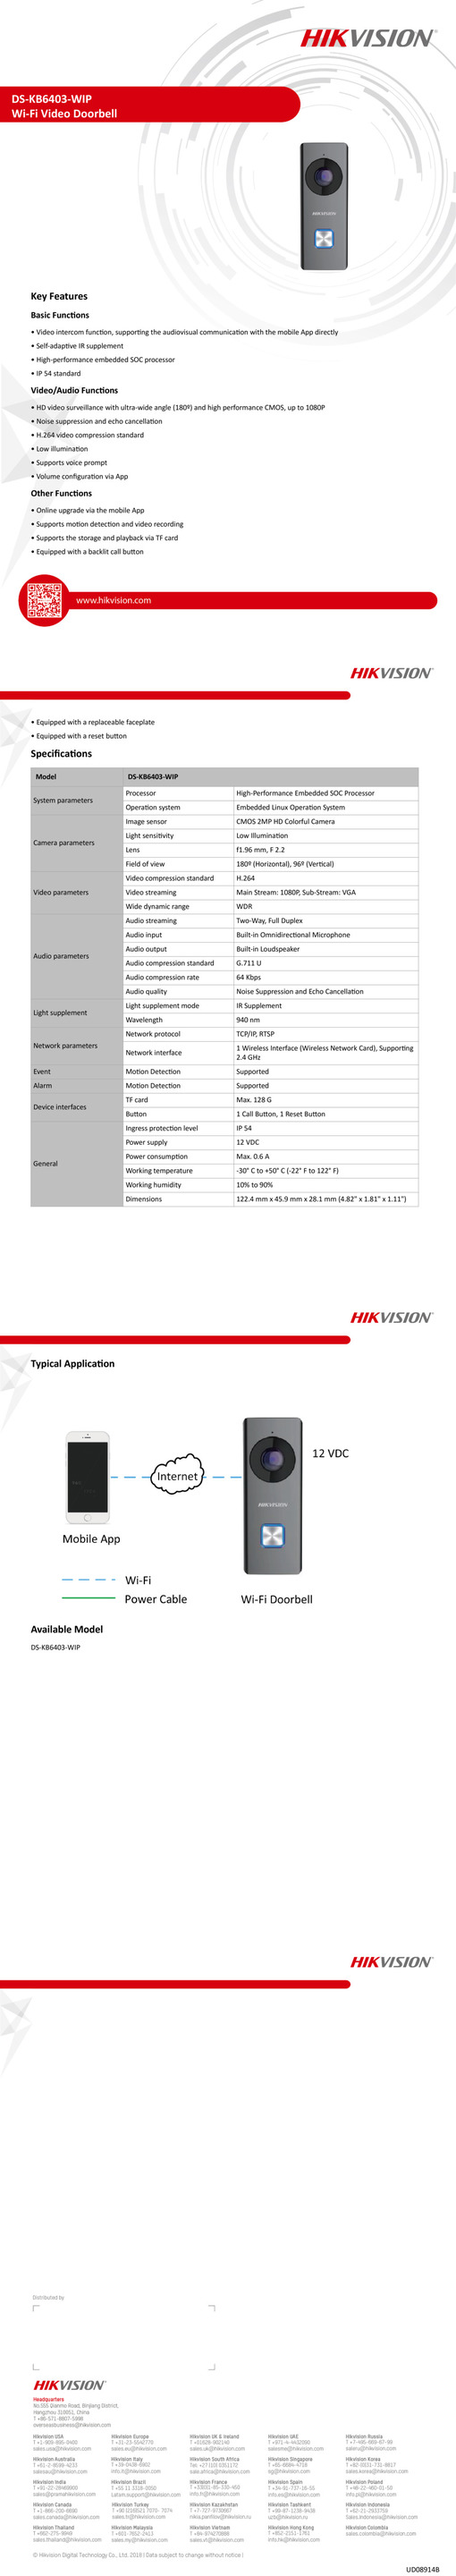 Hikvision WiFi Doorbell With Inbuilt Wide Angle Camera 0